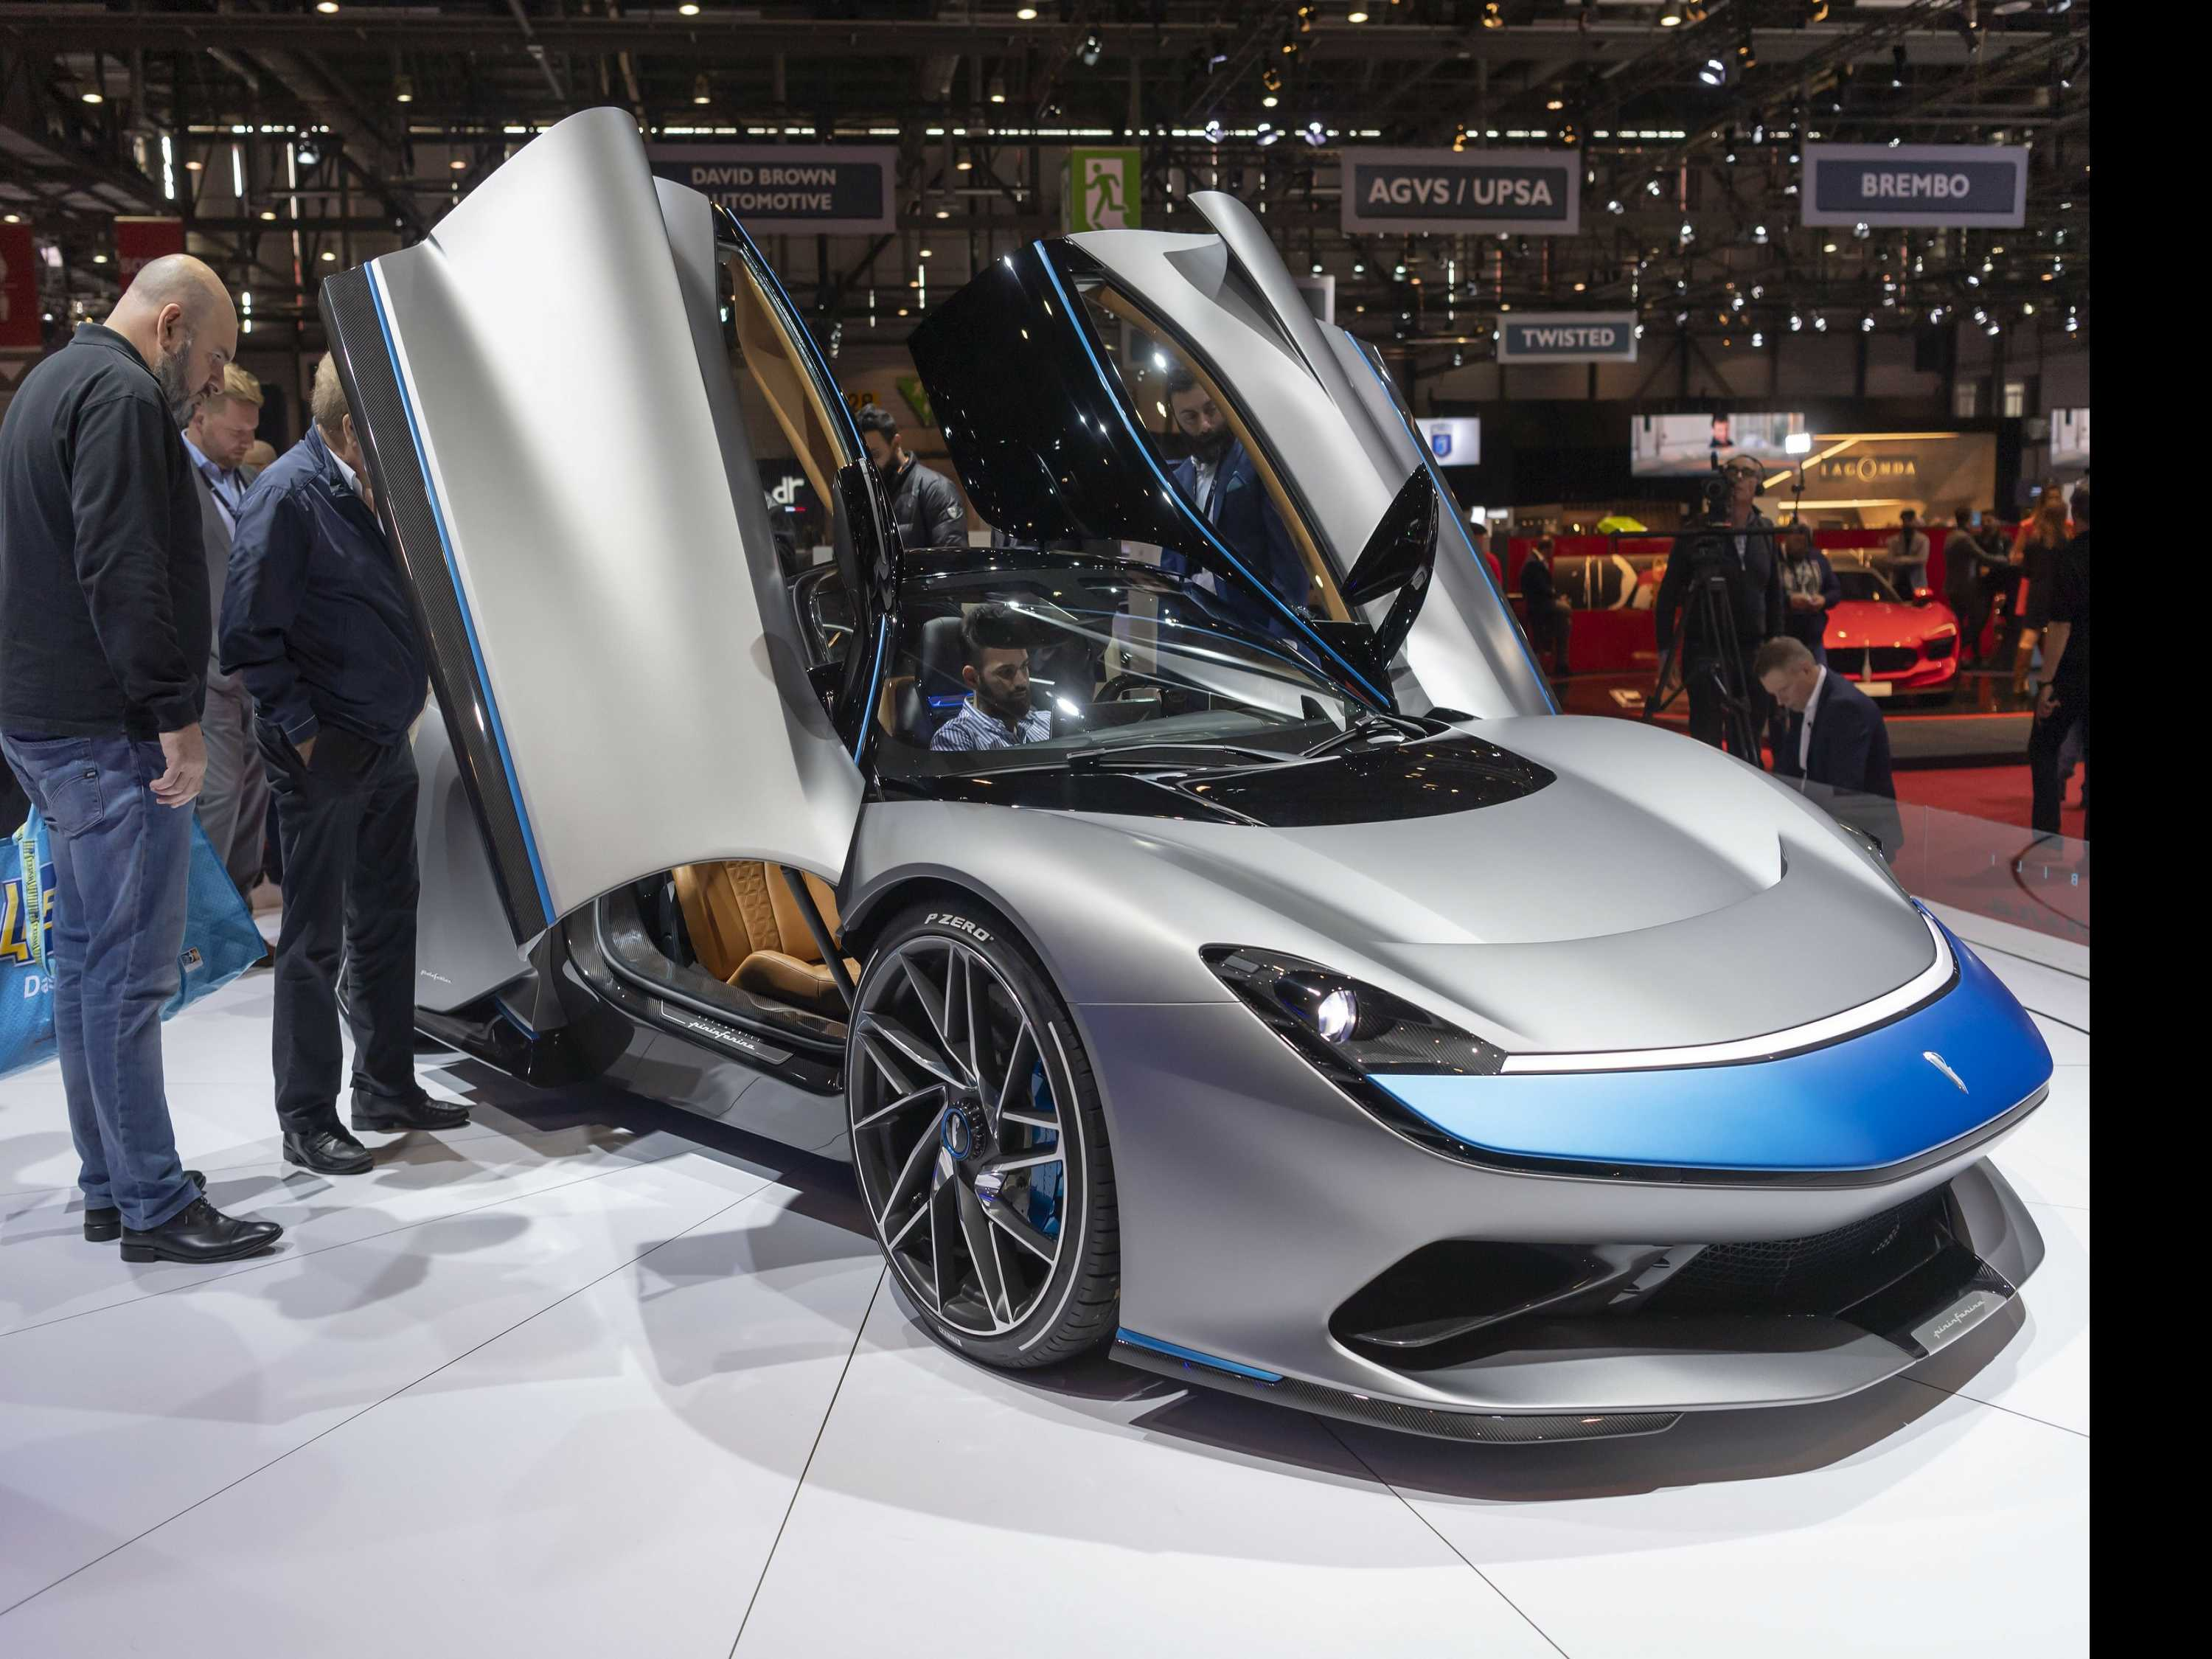 Looking is Free: High-End Rides Abundant at Geneva Auto Show